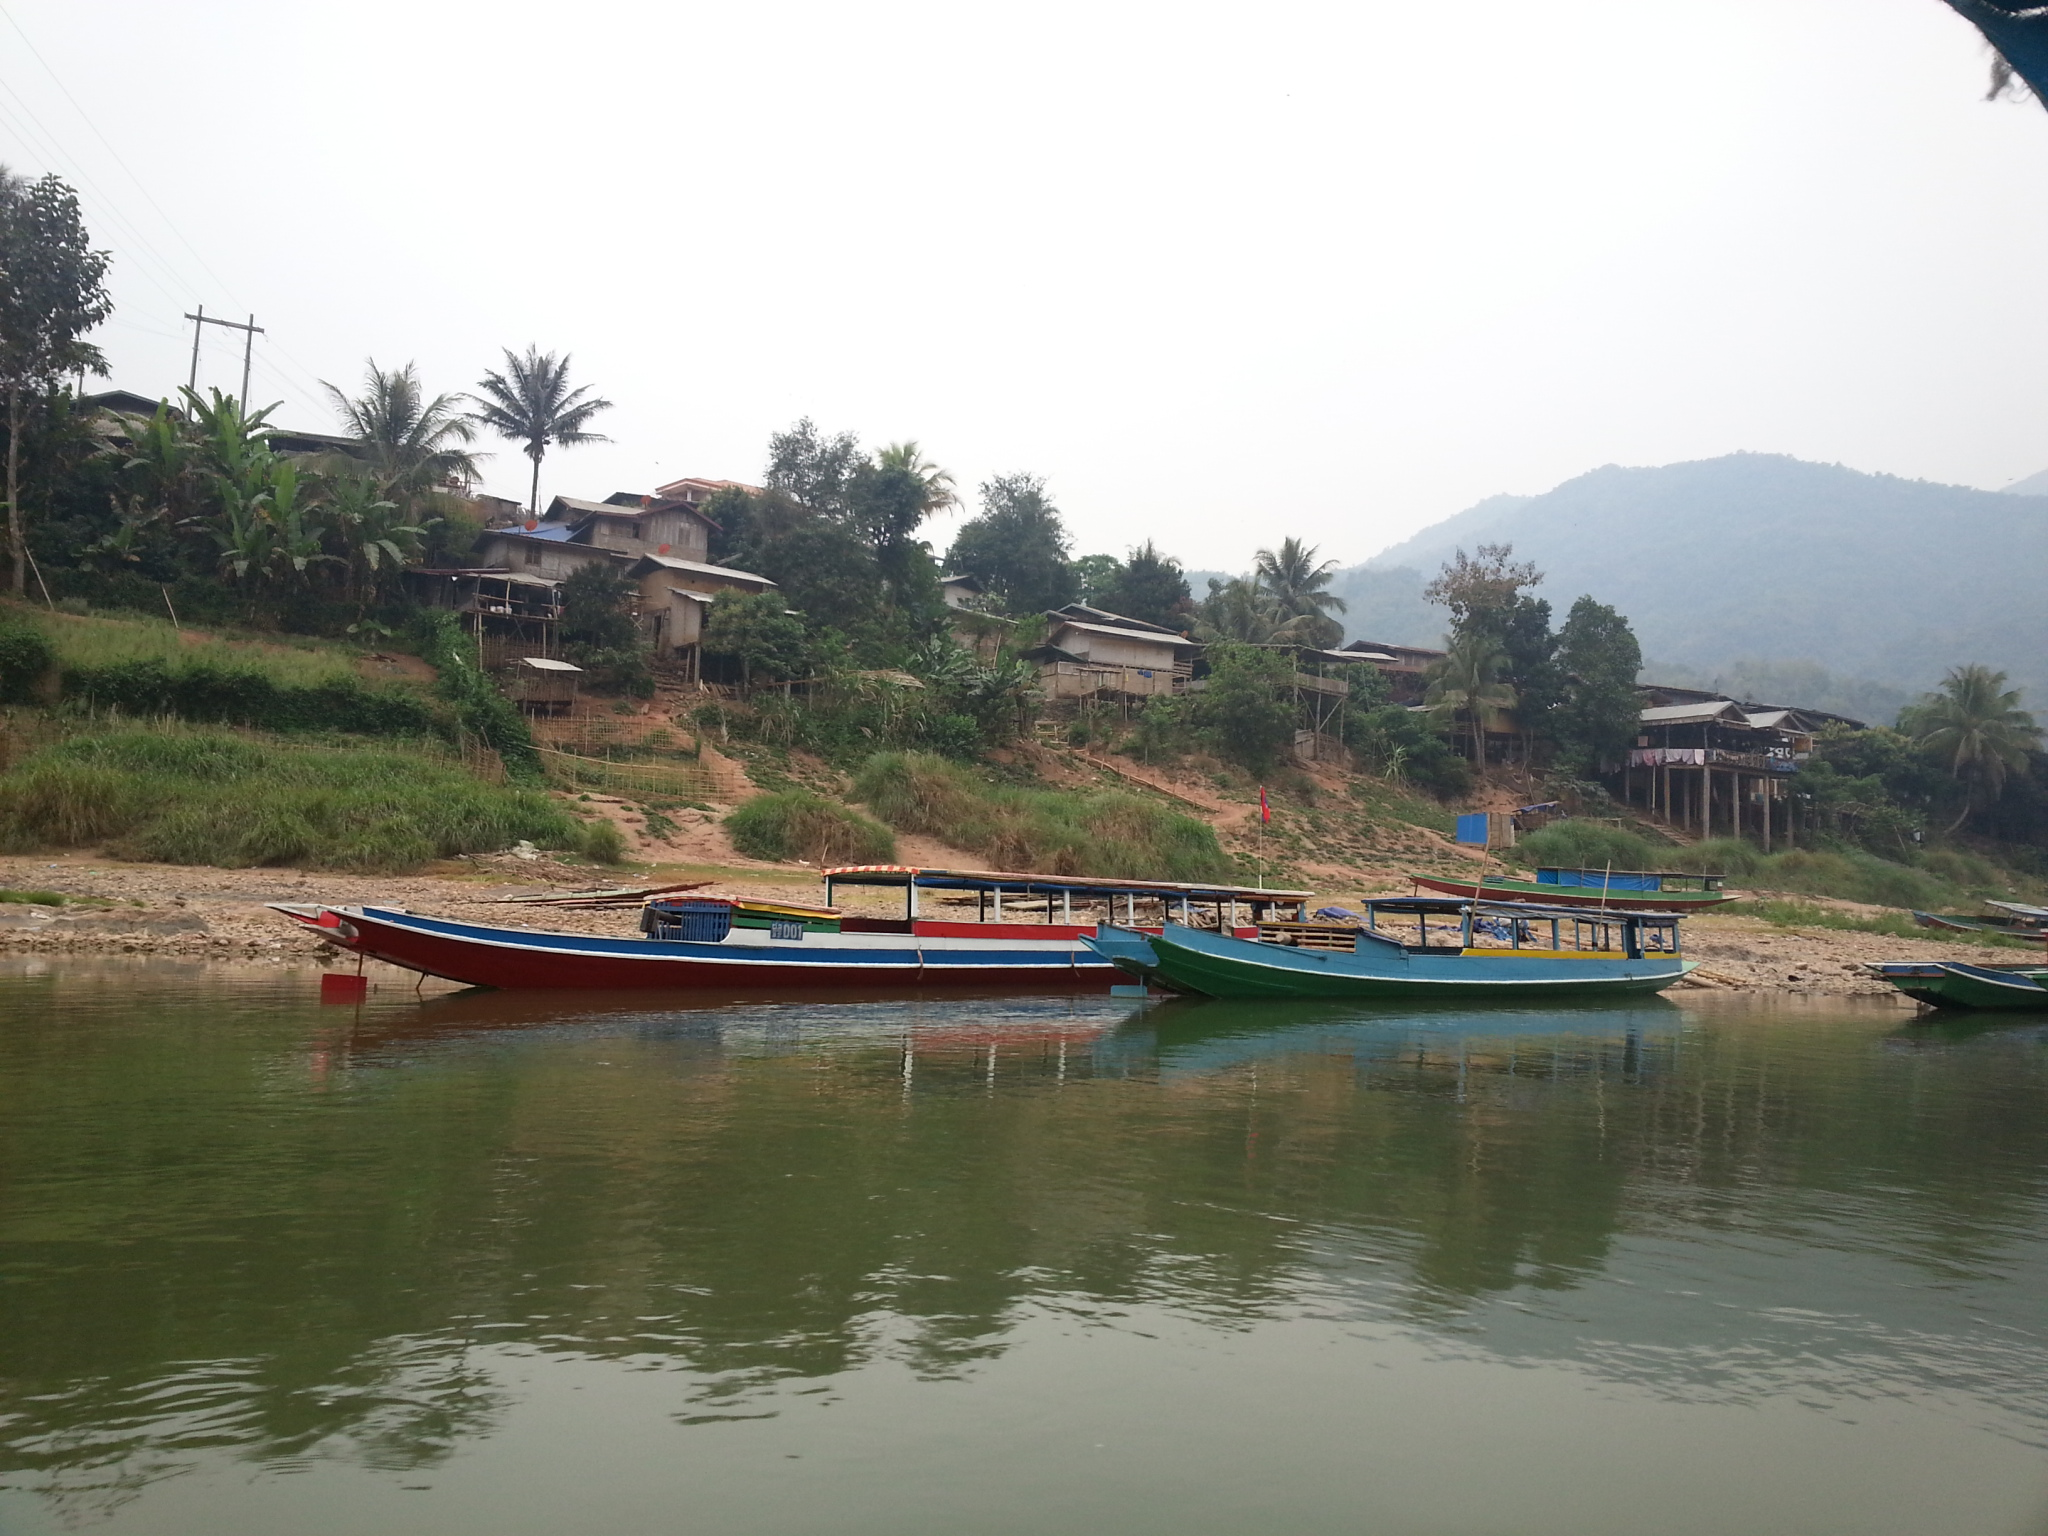 Our boat from Muong Khua to Nong Khiau